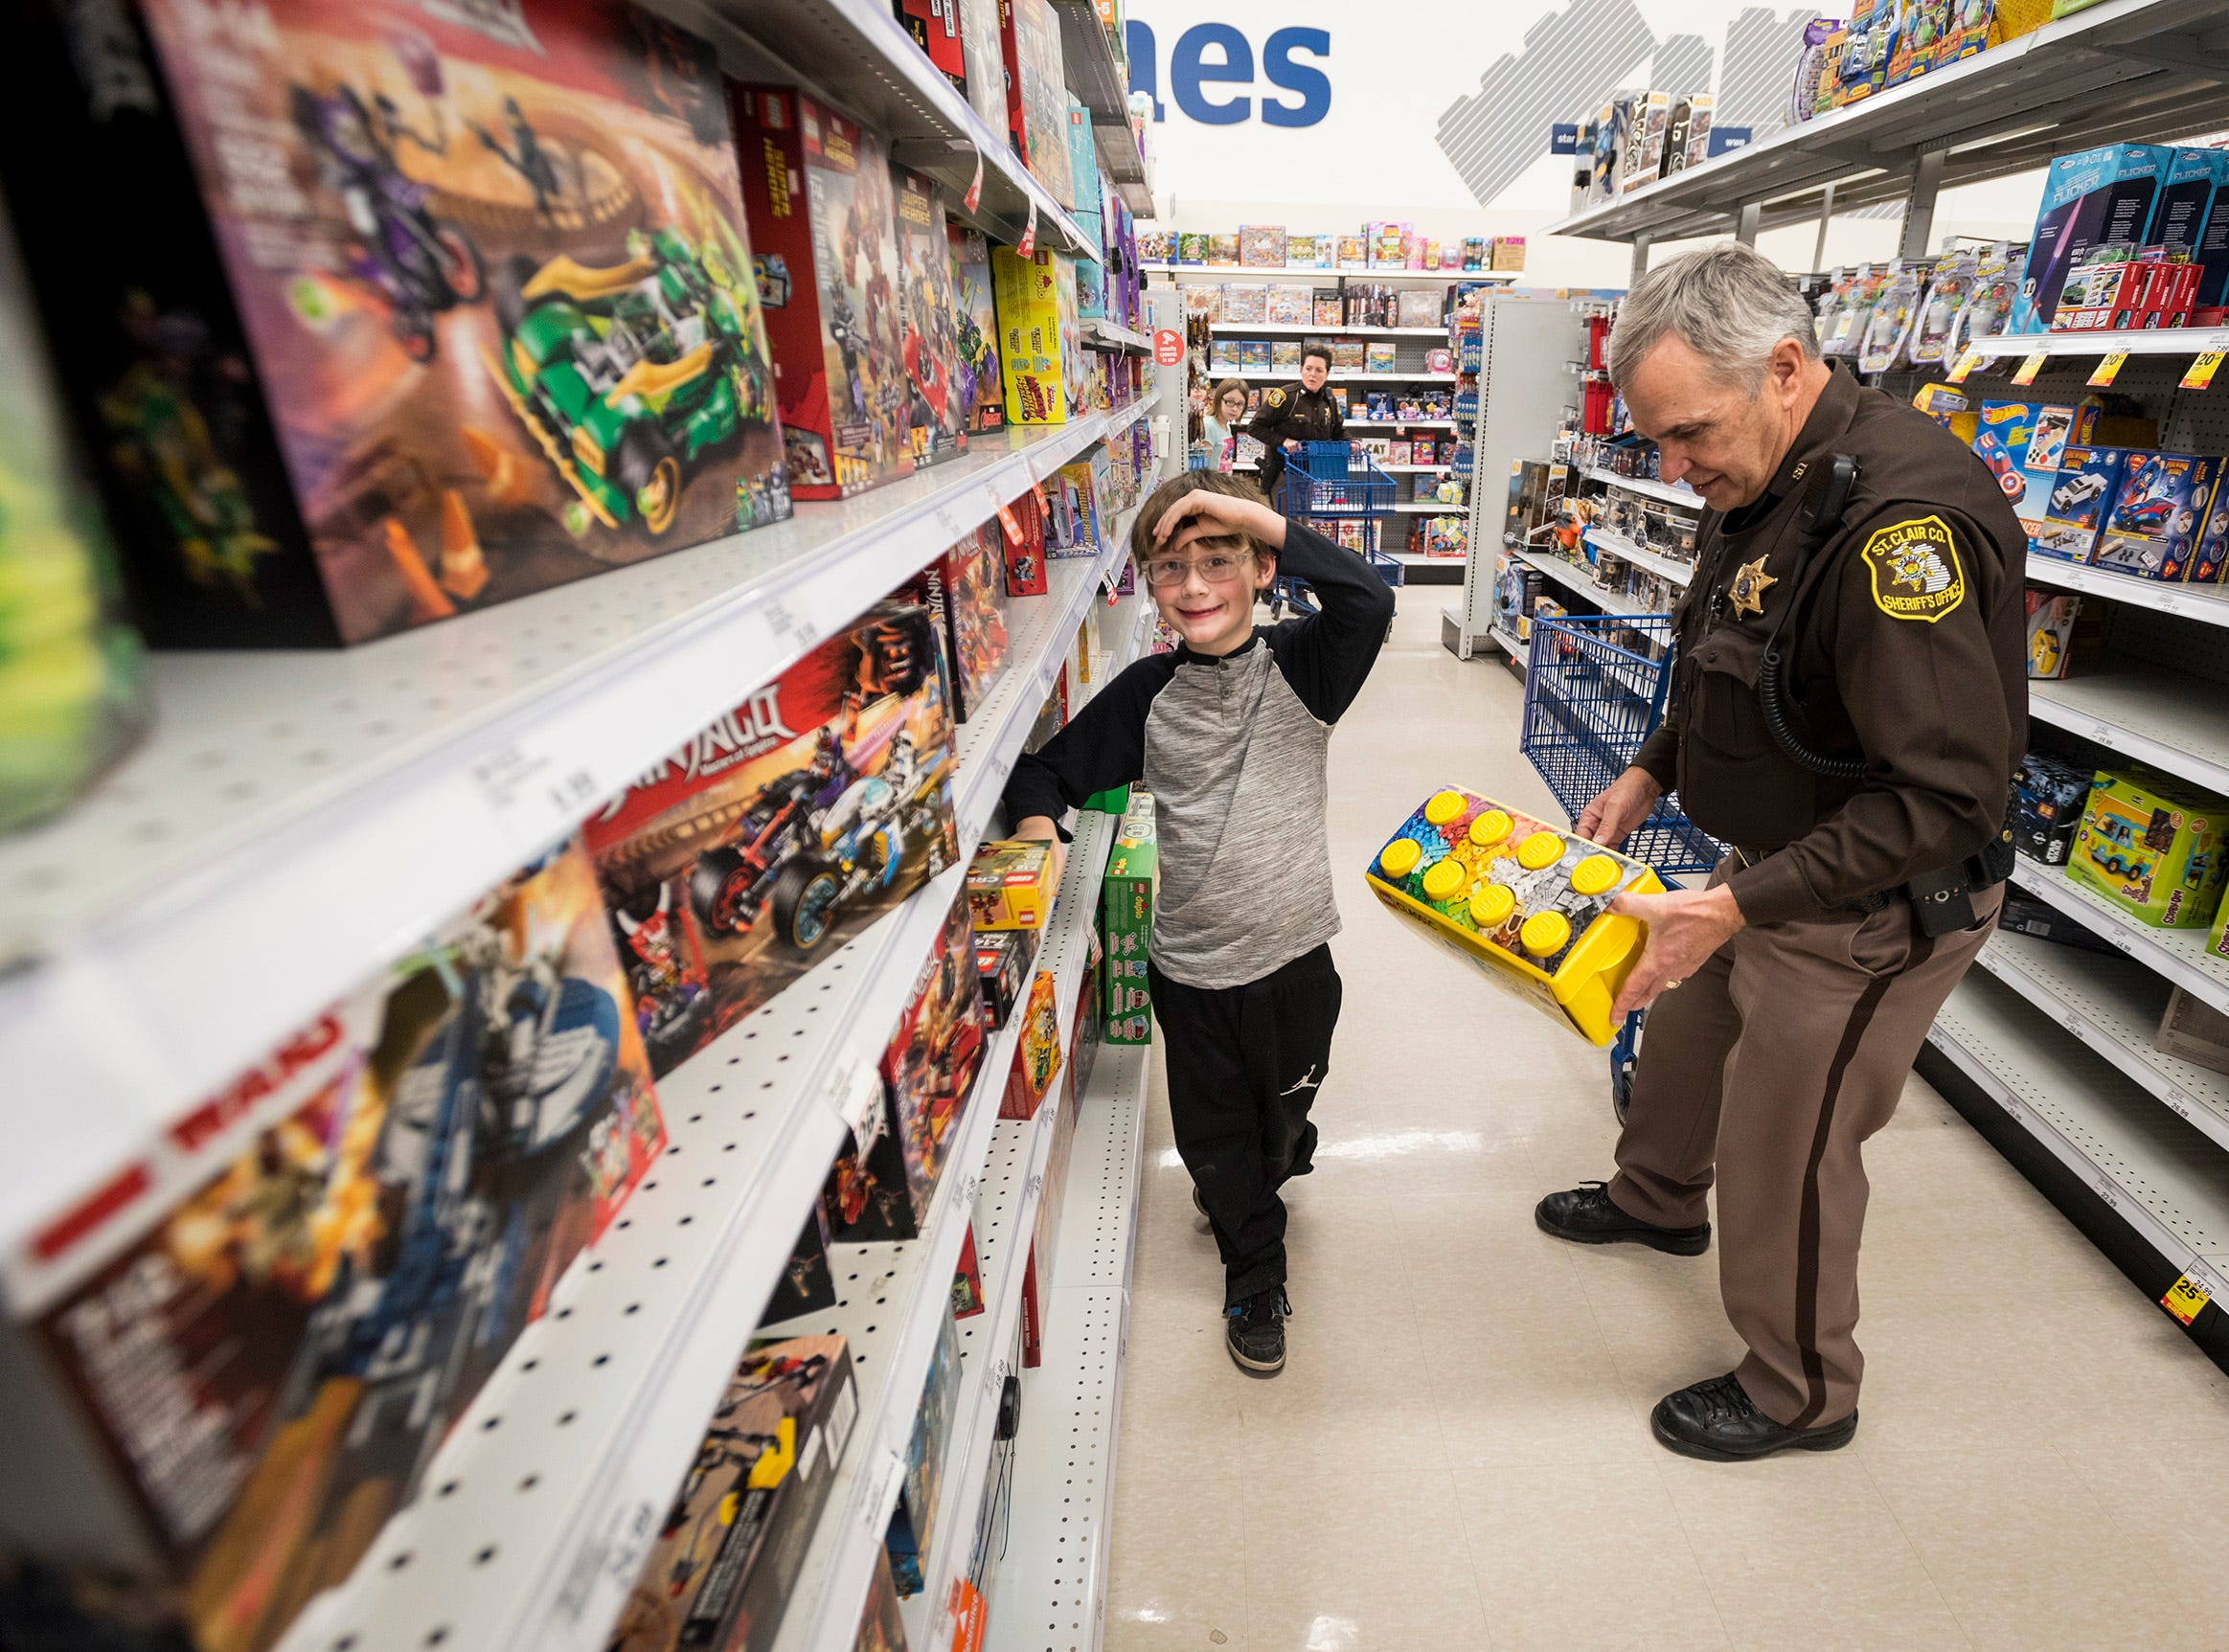 St. Clair County Deputy Richard Deshon, right, shops for Legos with Charles Leason, 8, at Christmas with a Cop Tuesday, Dec. 11, 2018 at Meijer in Fort Gratiot.